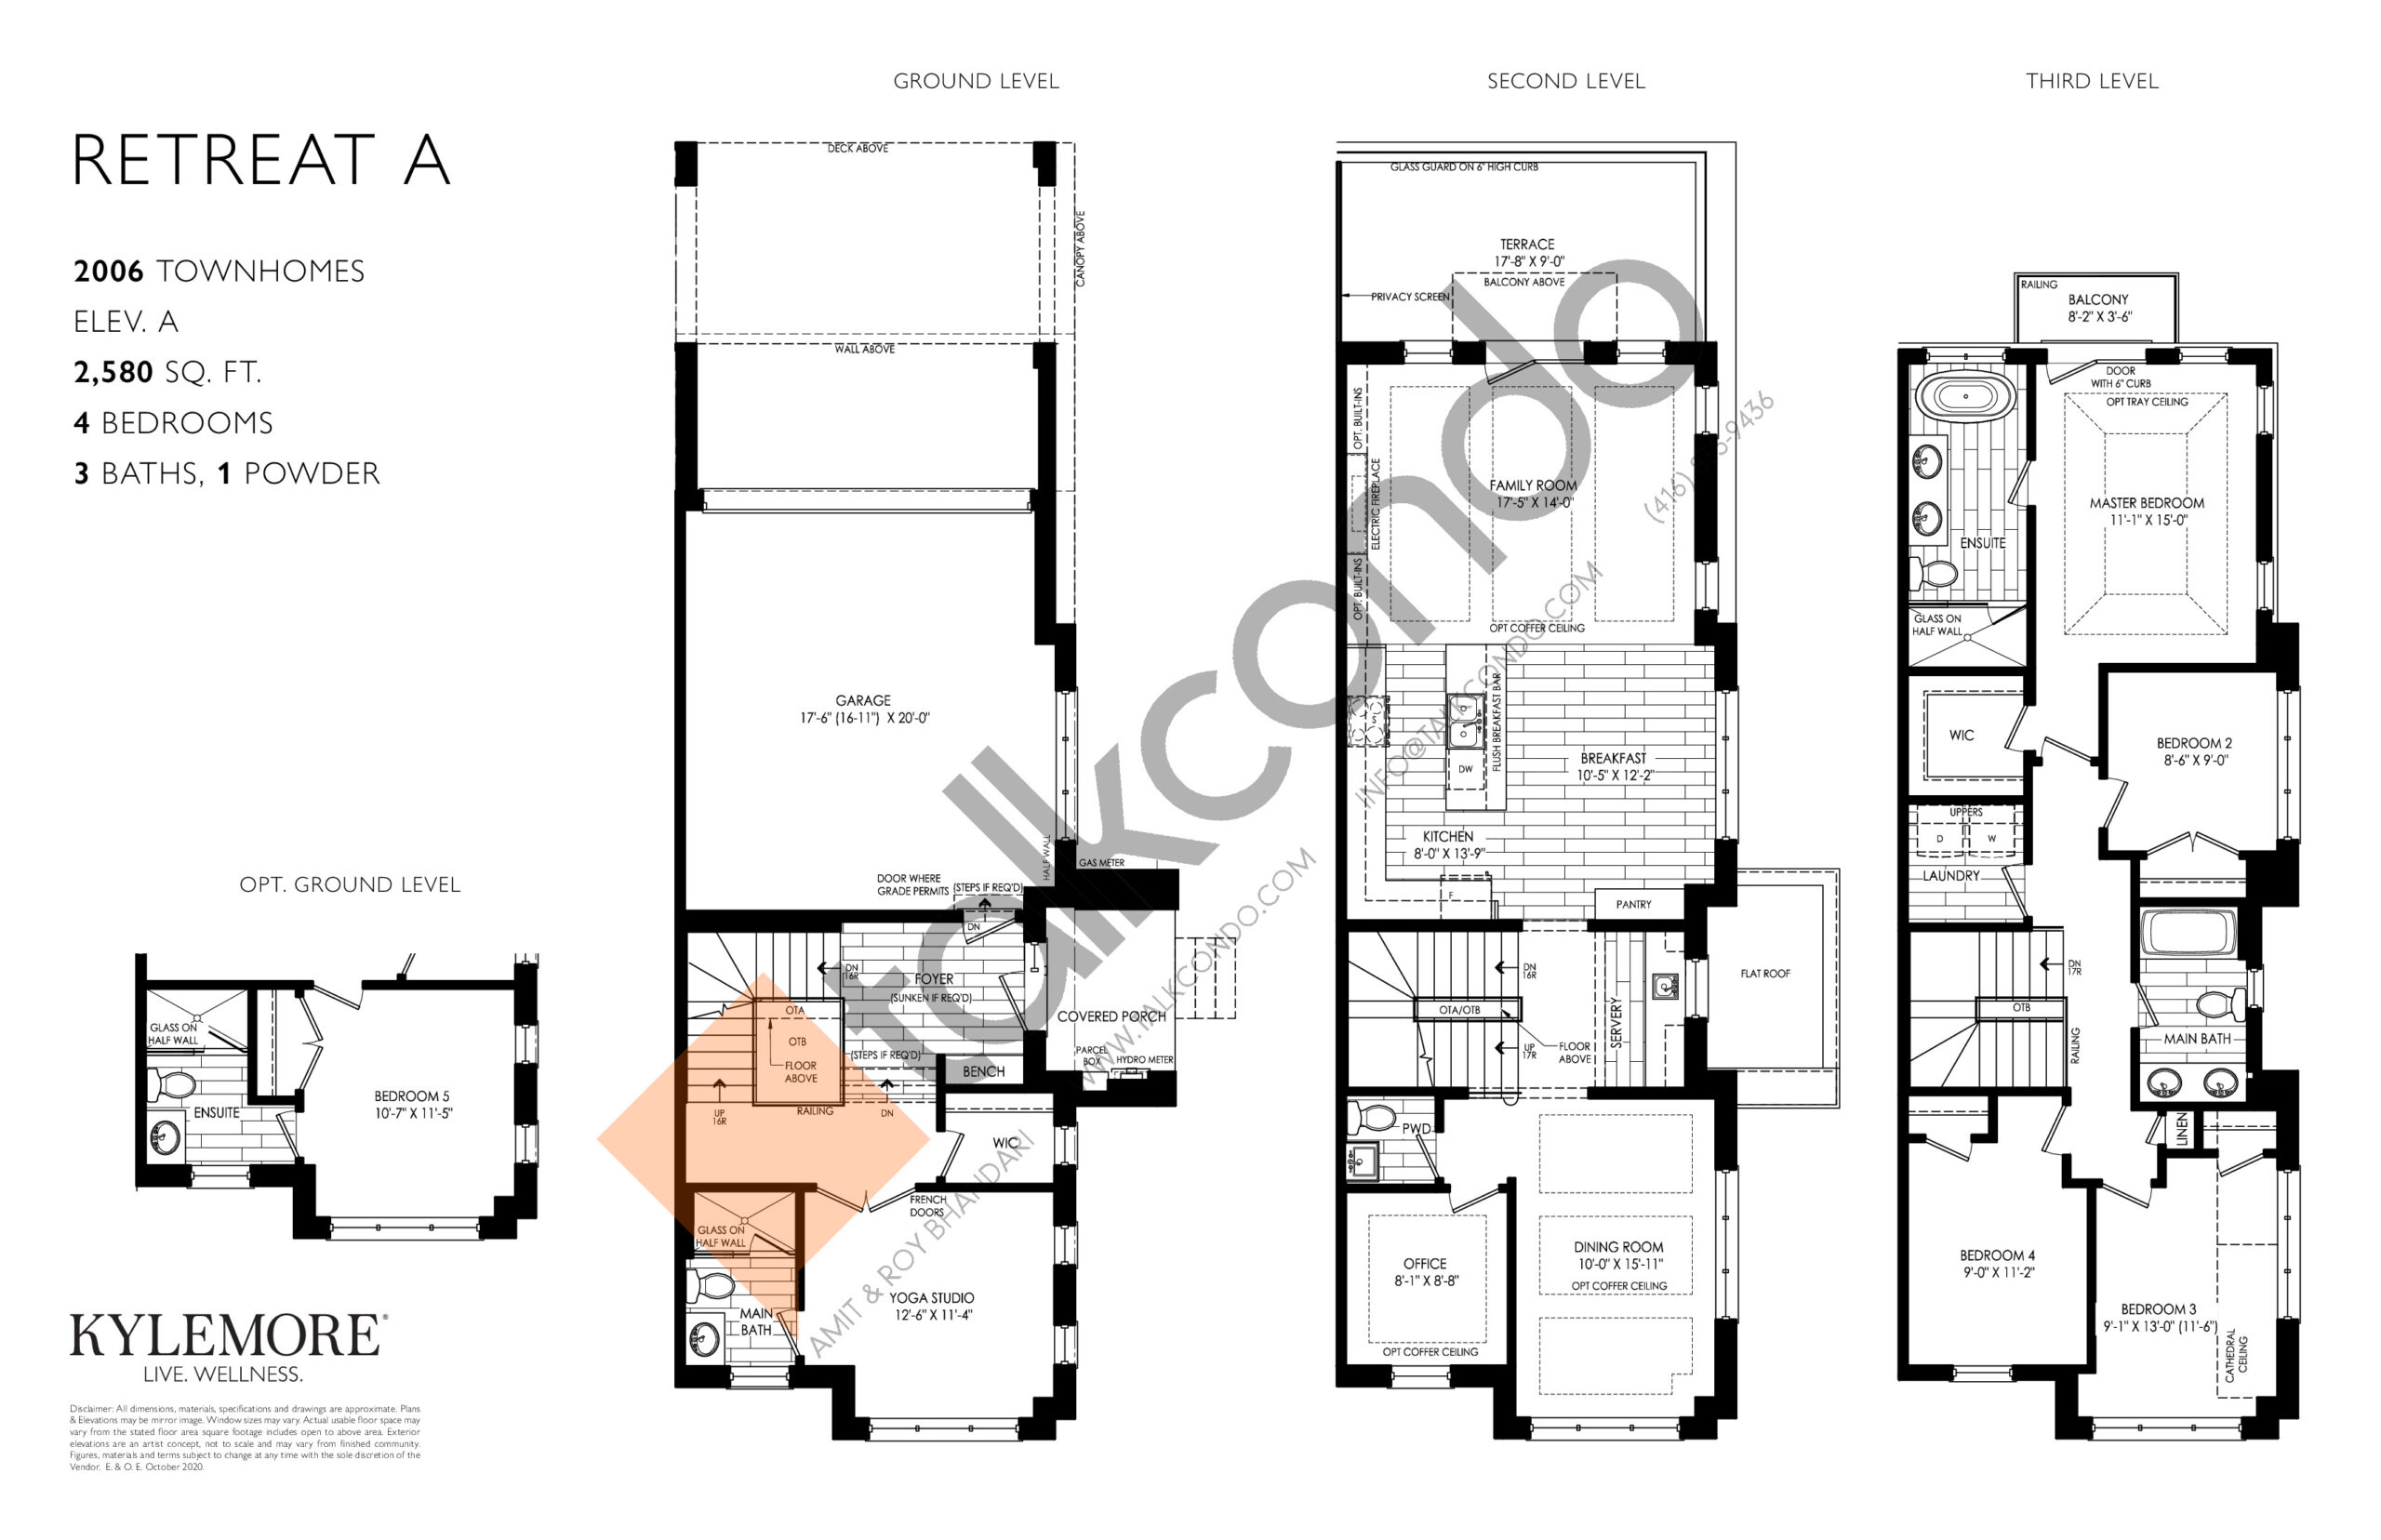 Retreat A Floor Plan at Angus Glen South Village - 2580 sq.ft